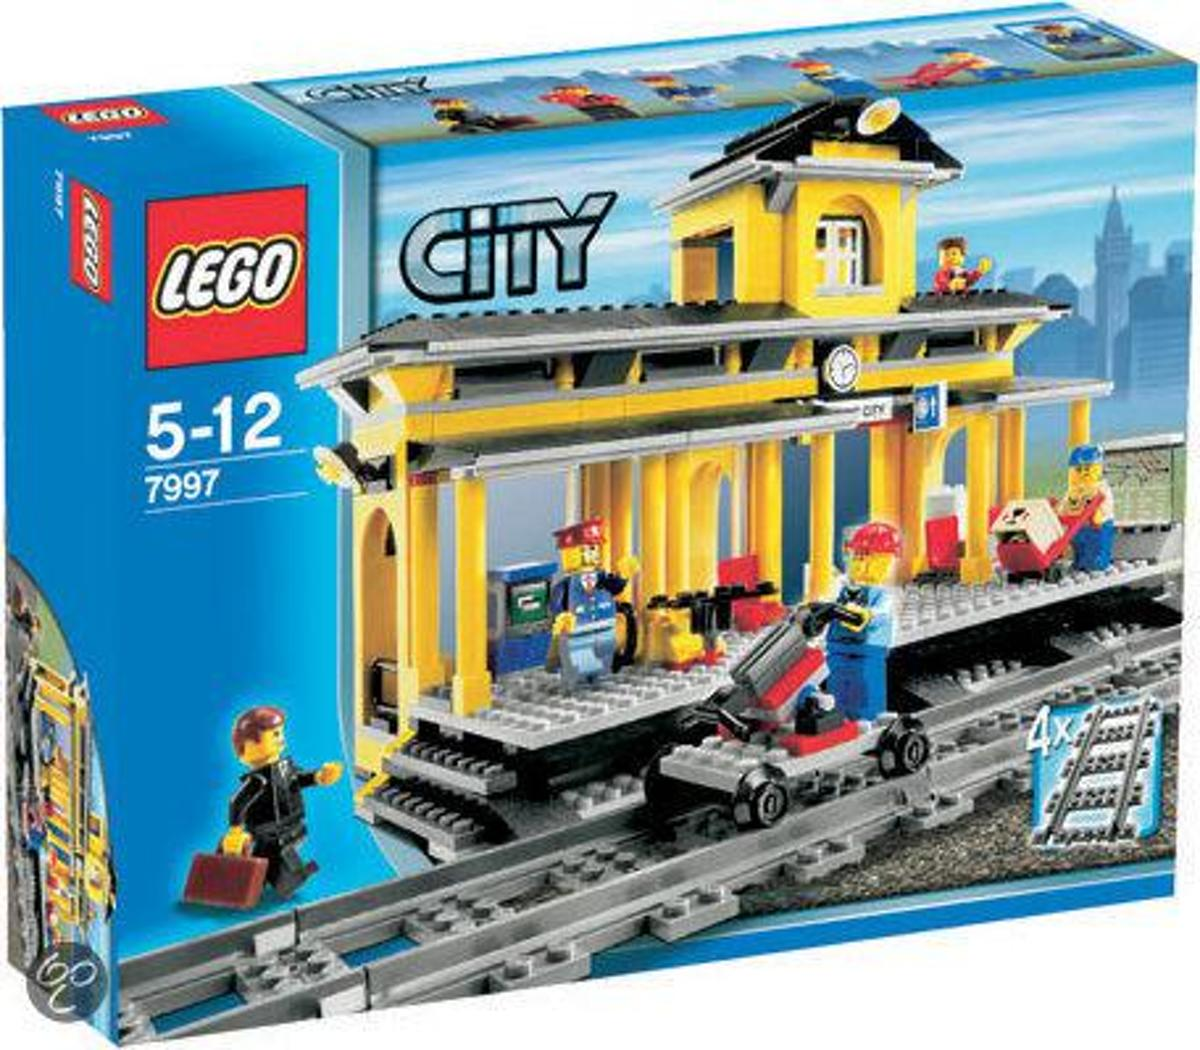 LEGO City Station 7997